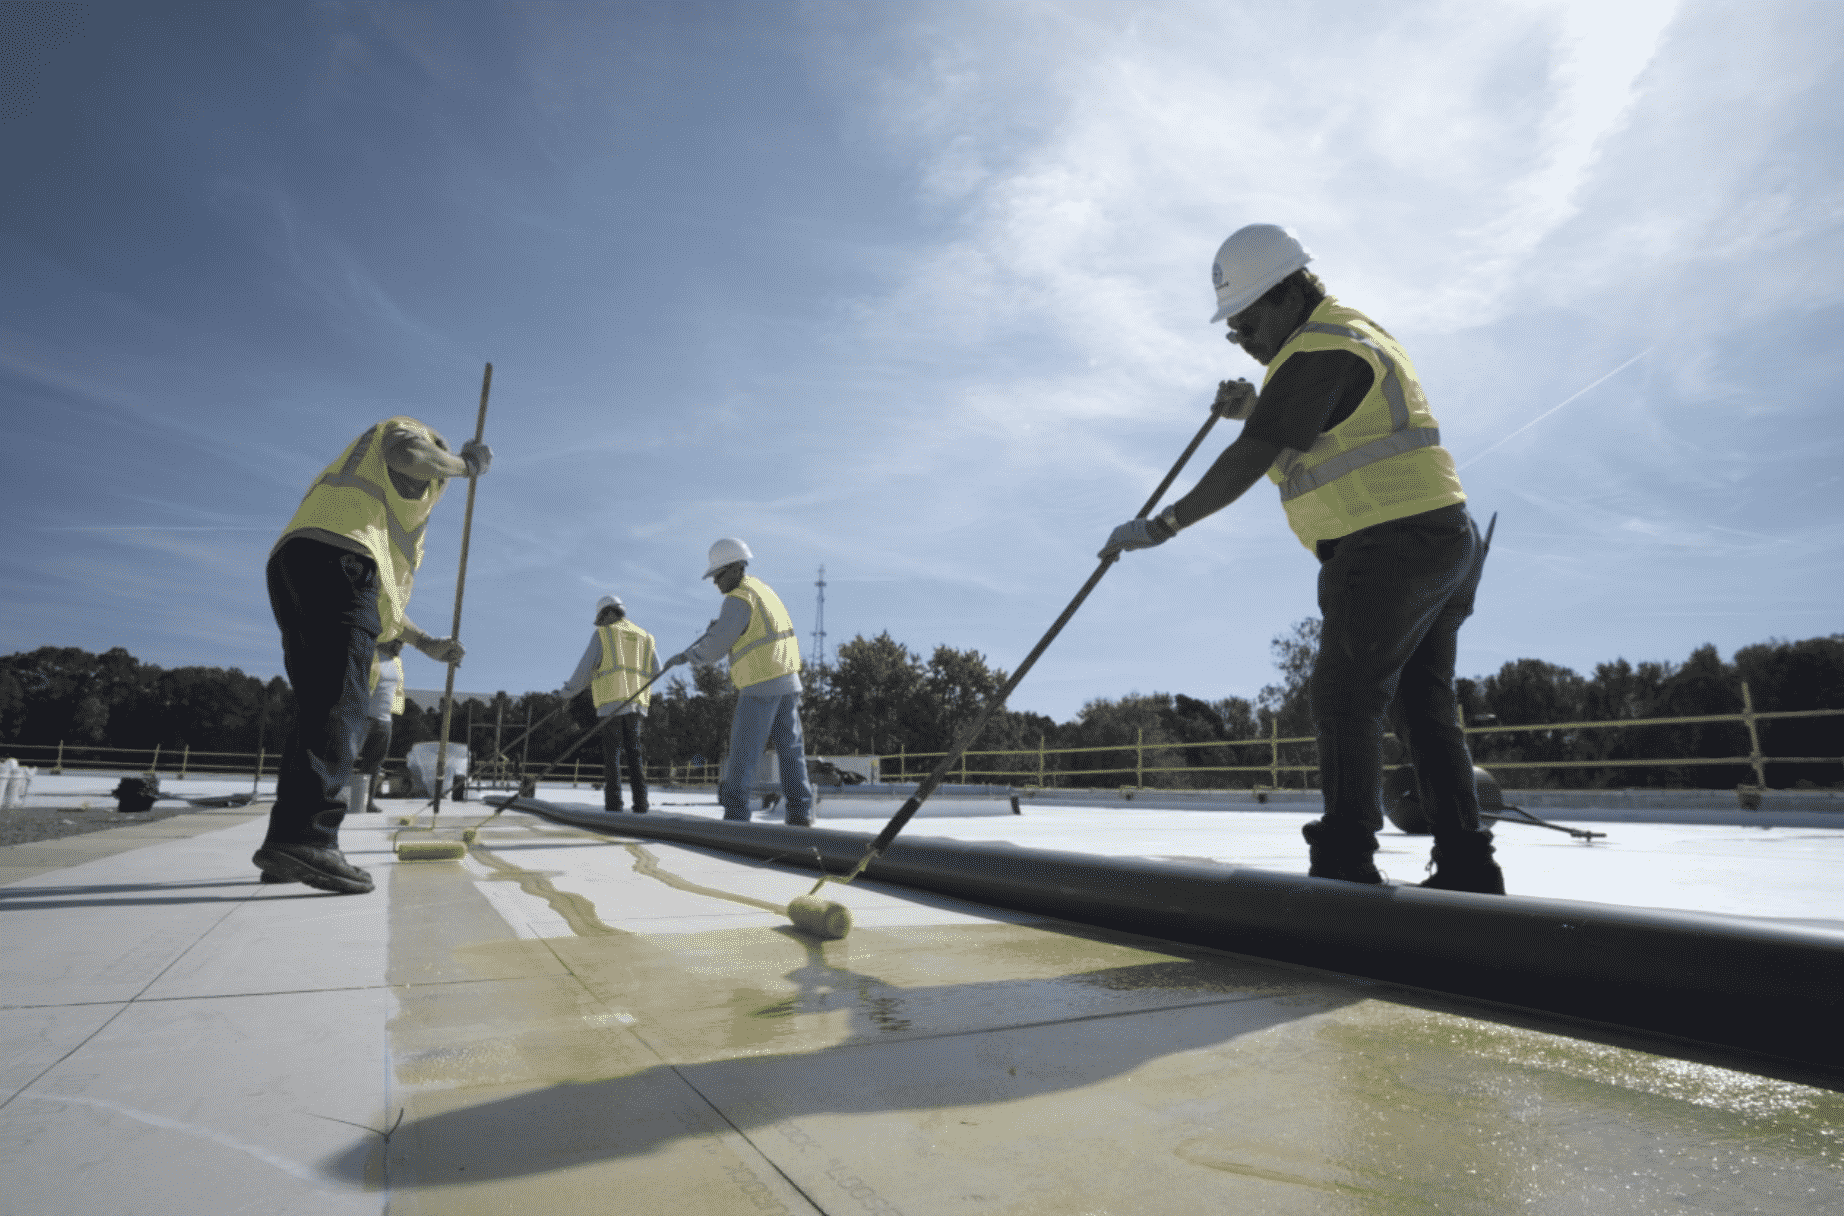 differences between residential & commercial roofing